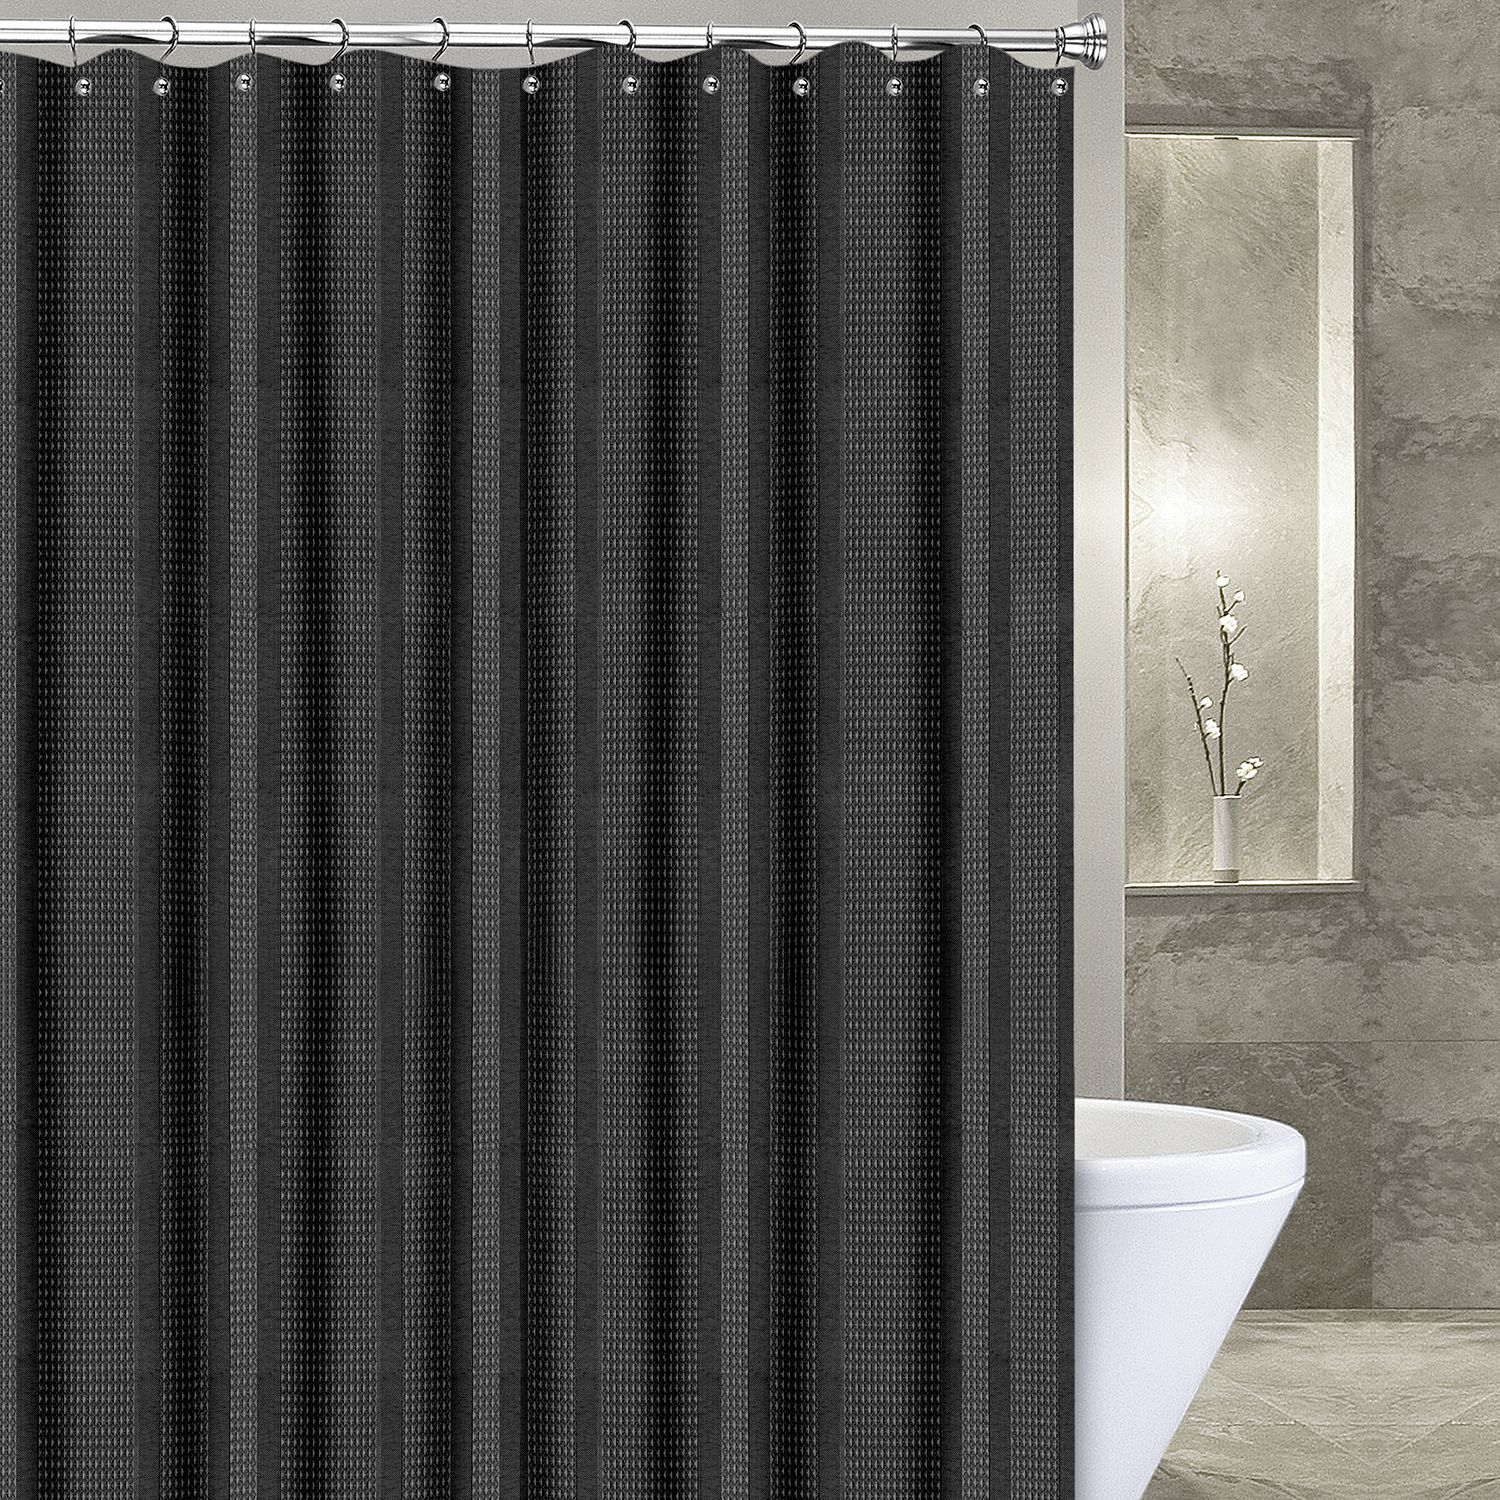 Amazing Popular Bath Waffle Stripe Fabric Shower Curtain. Mocha Black White Ivory